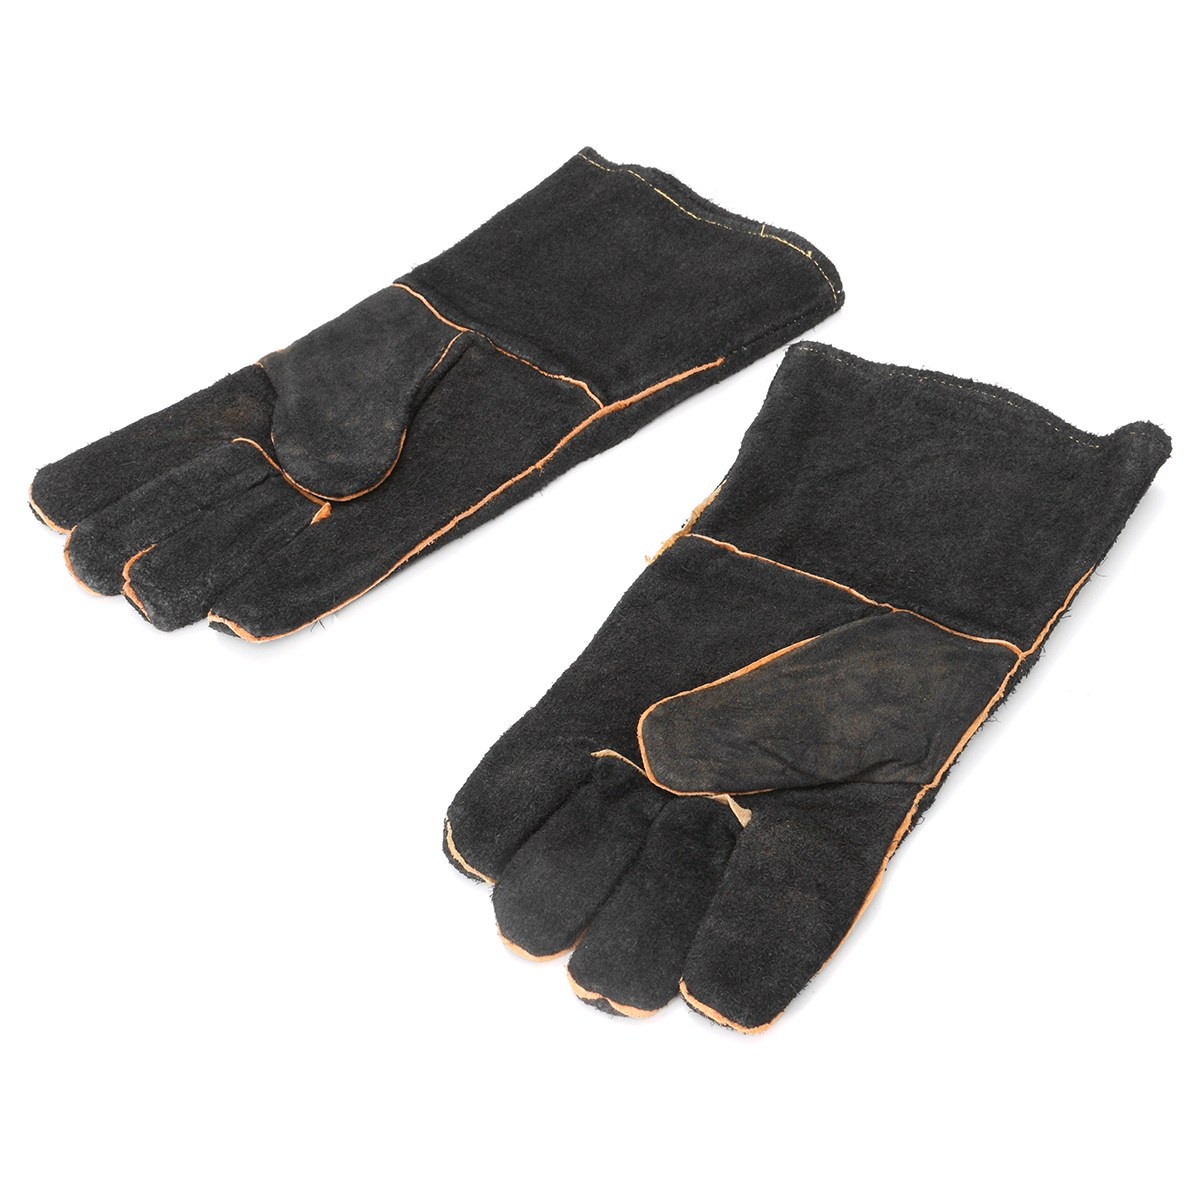 NEW Safurance 32cm XL Heavy Duty Welding Gloves Stoves PU Leather Cowhide Protect Welder Hands Workplace Safety Glove drop shopping leather canvas abrasion safety working welder gloves mechanical working leather welding gloves